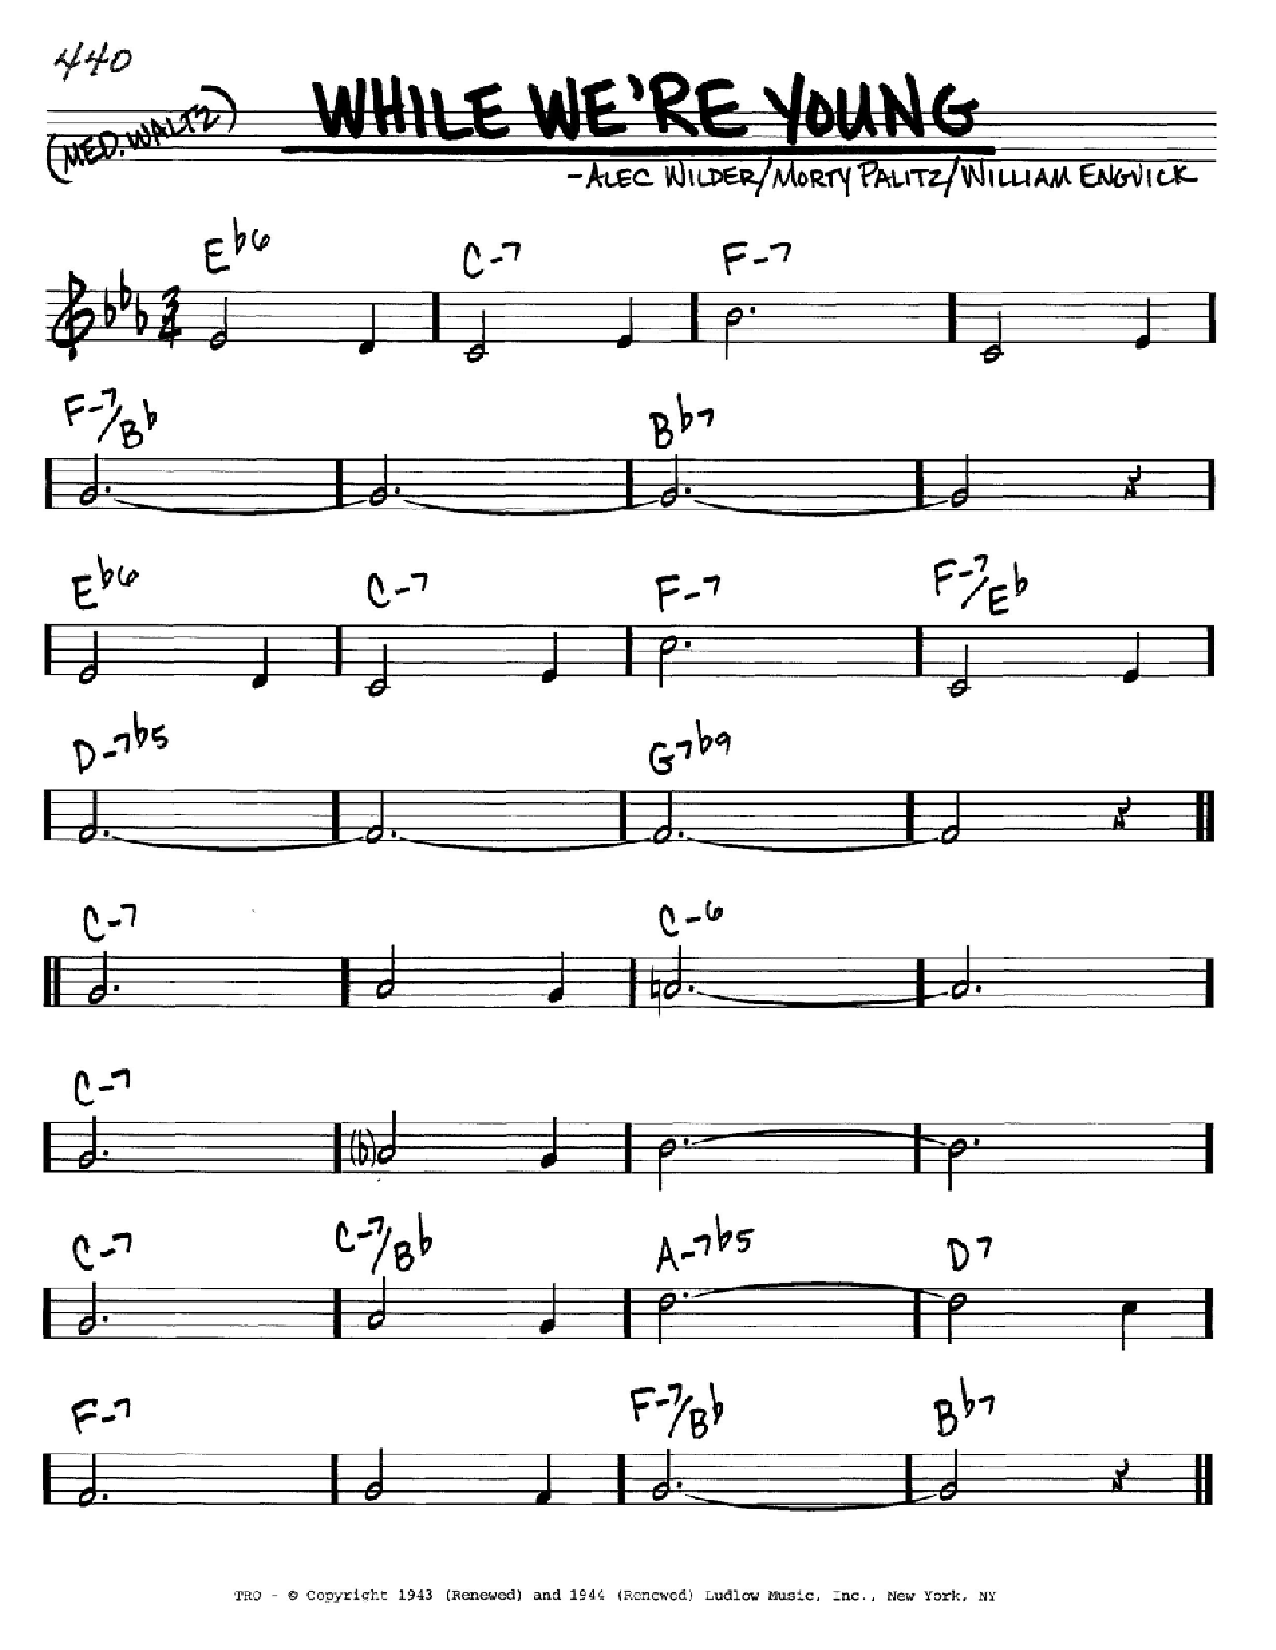 While We're Young sheet music for voice and other instruments (C) by William Engvick